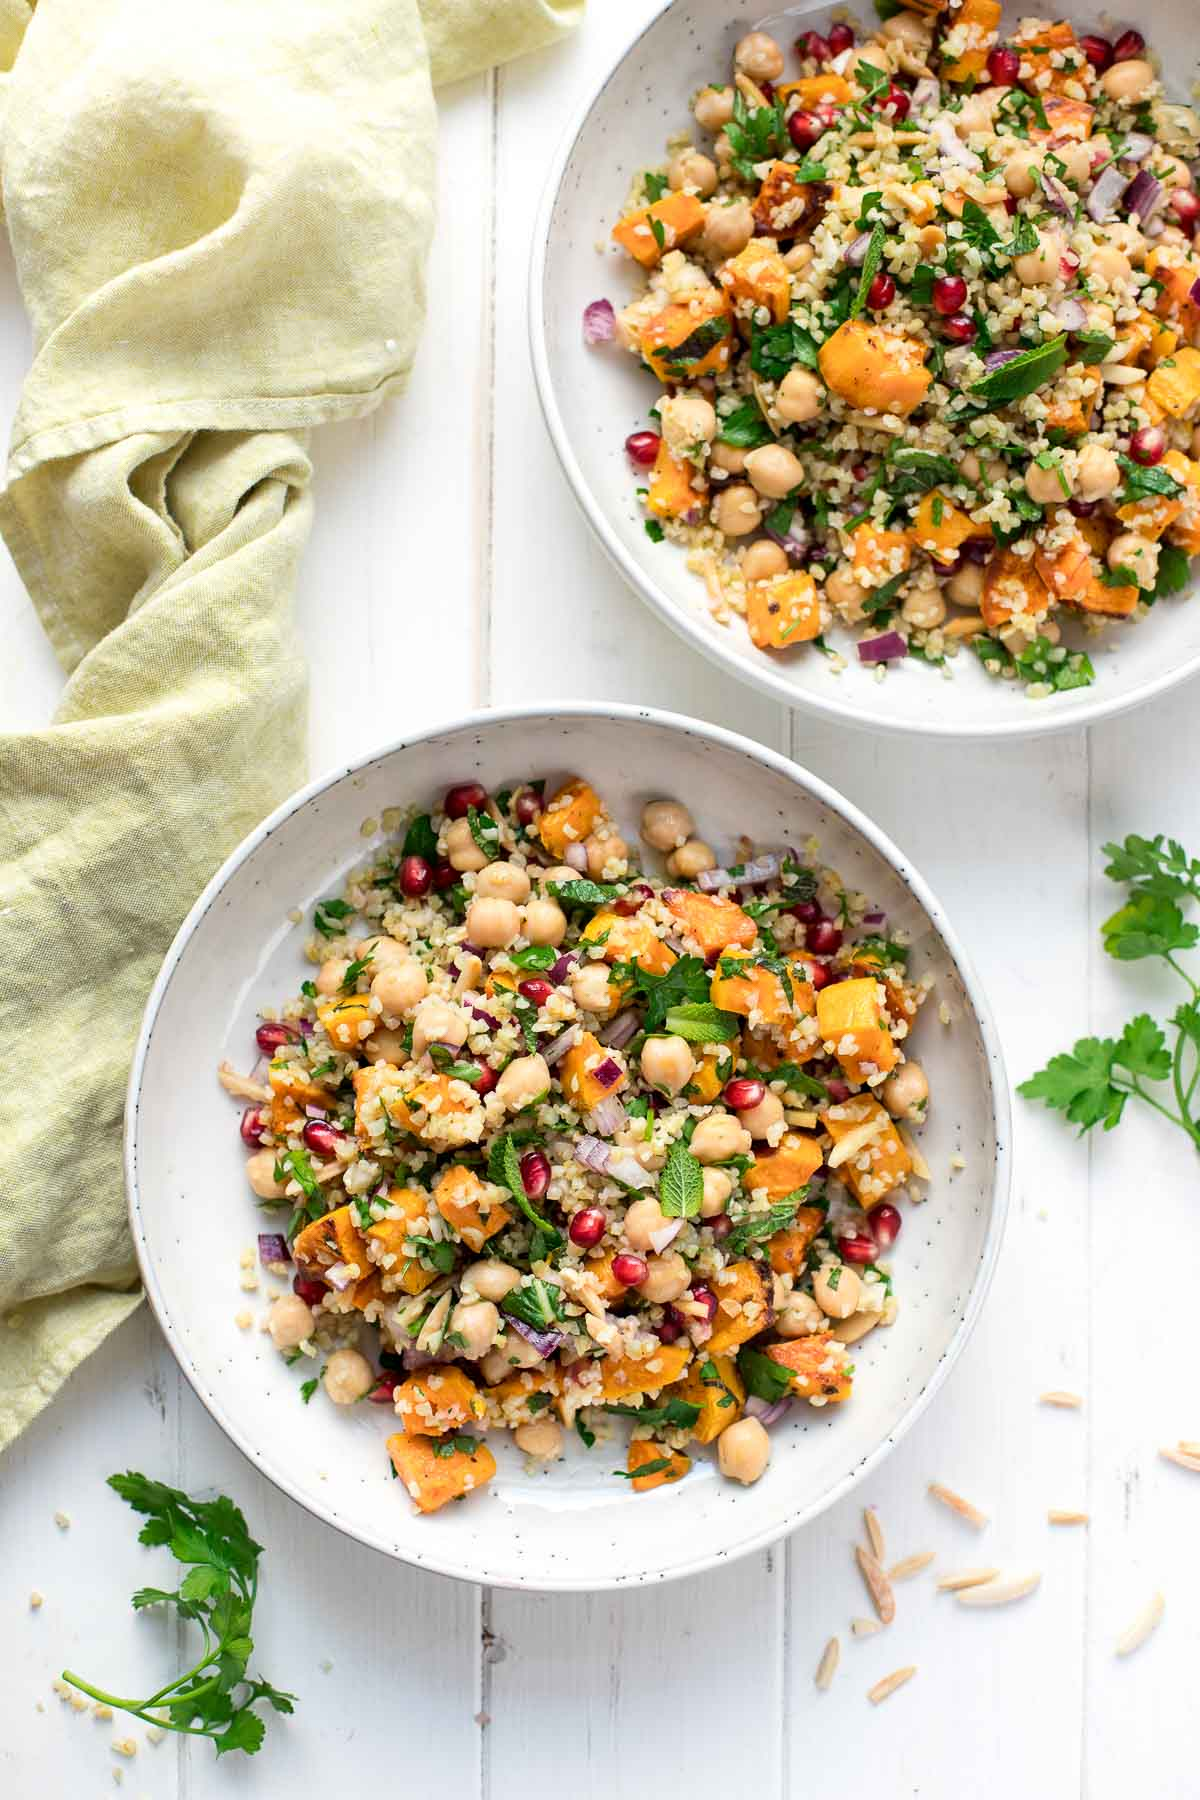 Bulgur Salad with Sweet Potatoes, Chickpeas, Herbs and Almonds